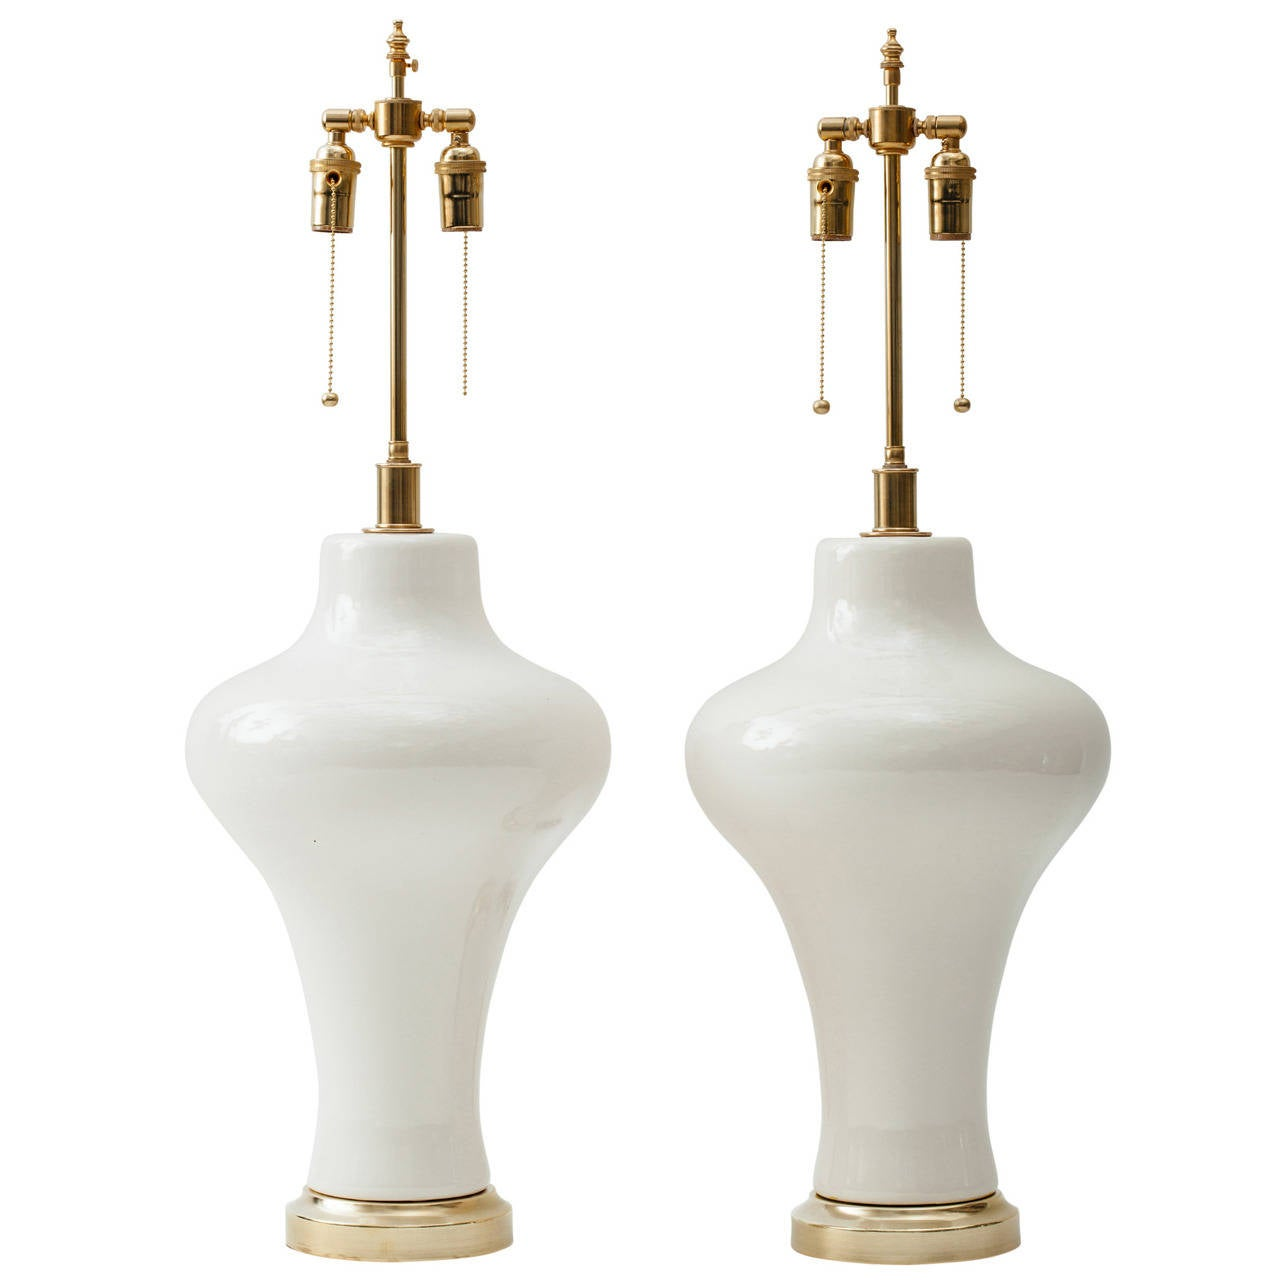 Monumental 1960s Sculptural Italian Ceramic Lamps